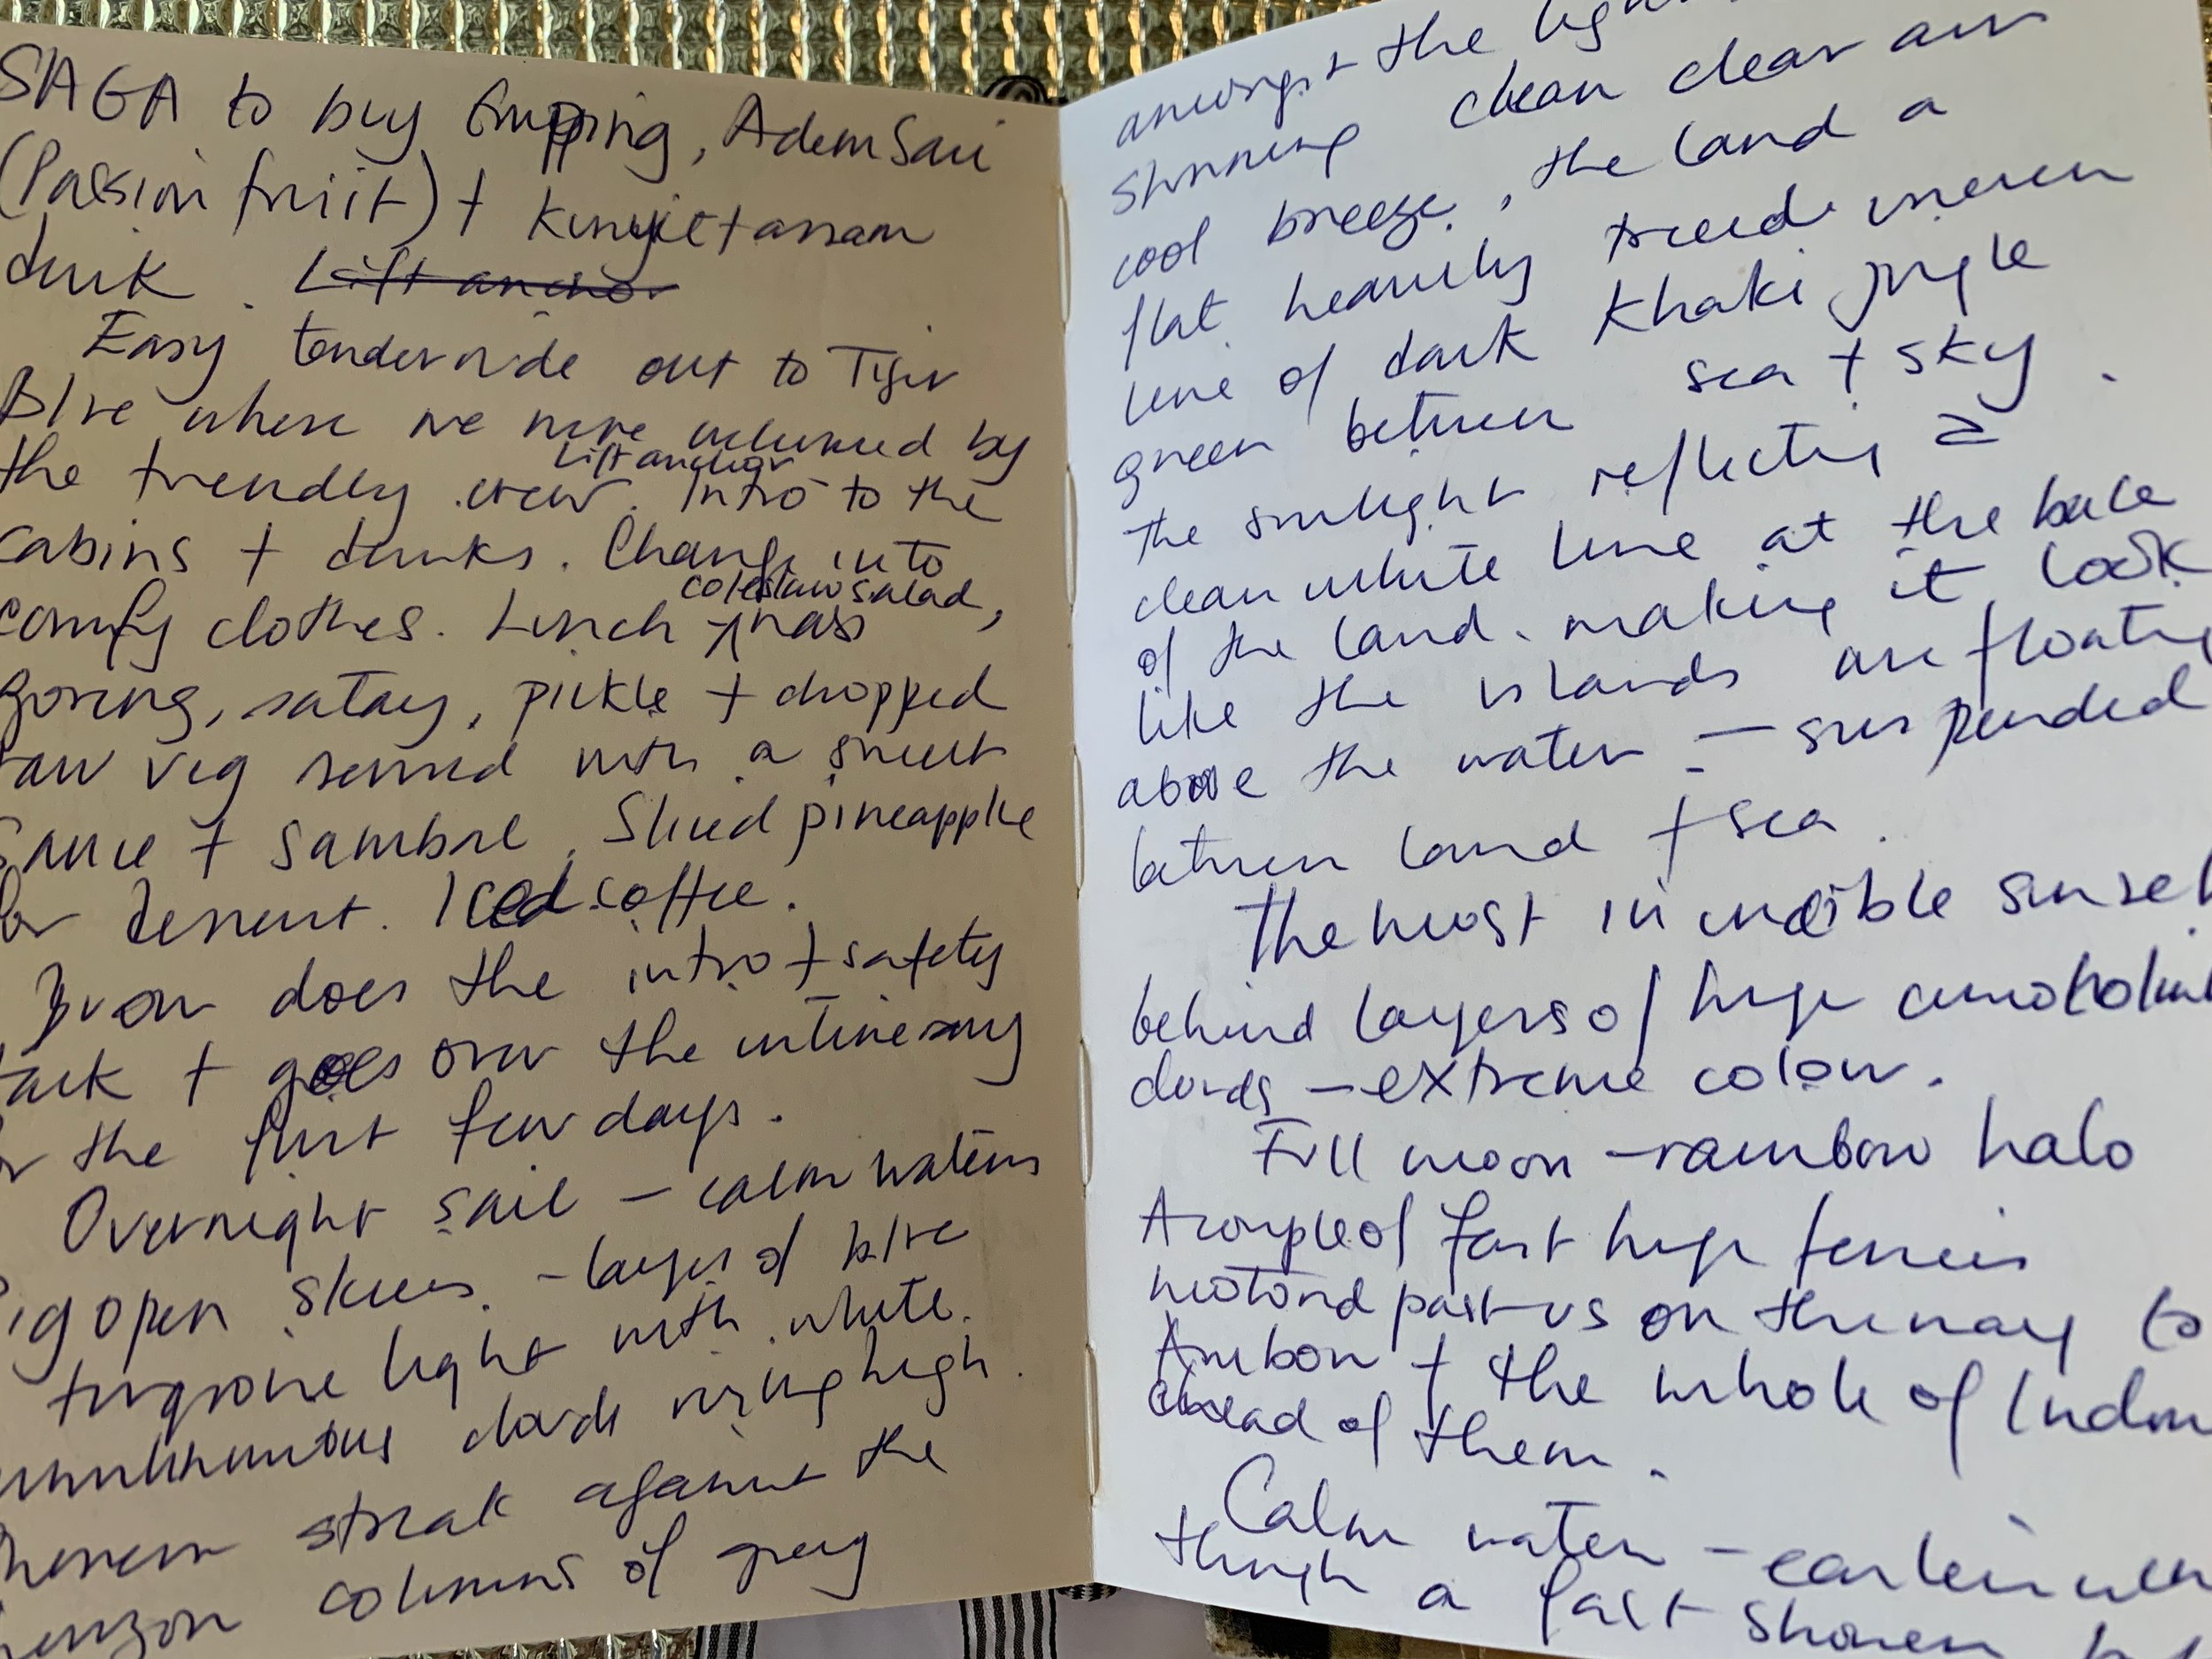 Turn your travel notes into a magazine article or a super travel blog.